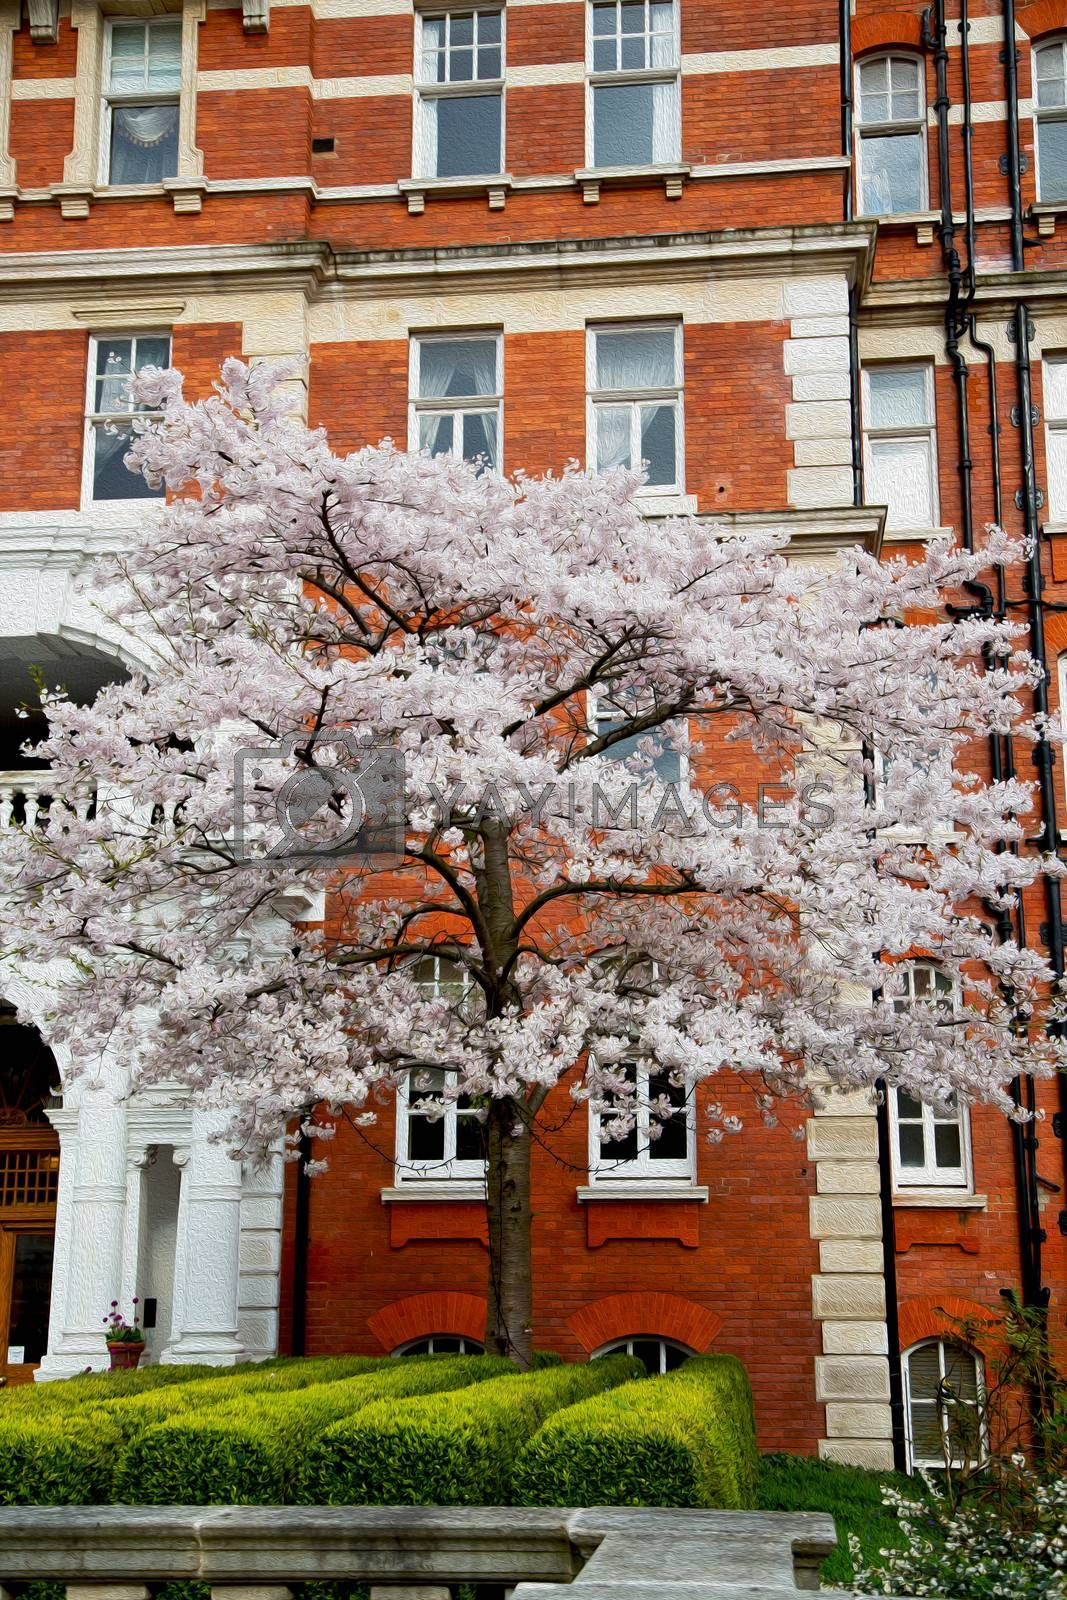 tree  window in europe london  red brick wall     and      histo by lkpro